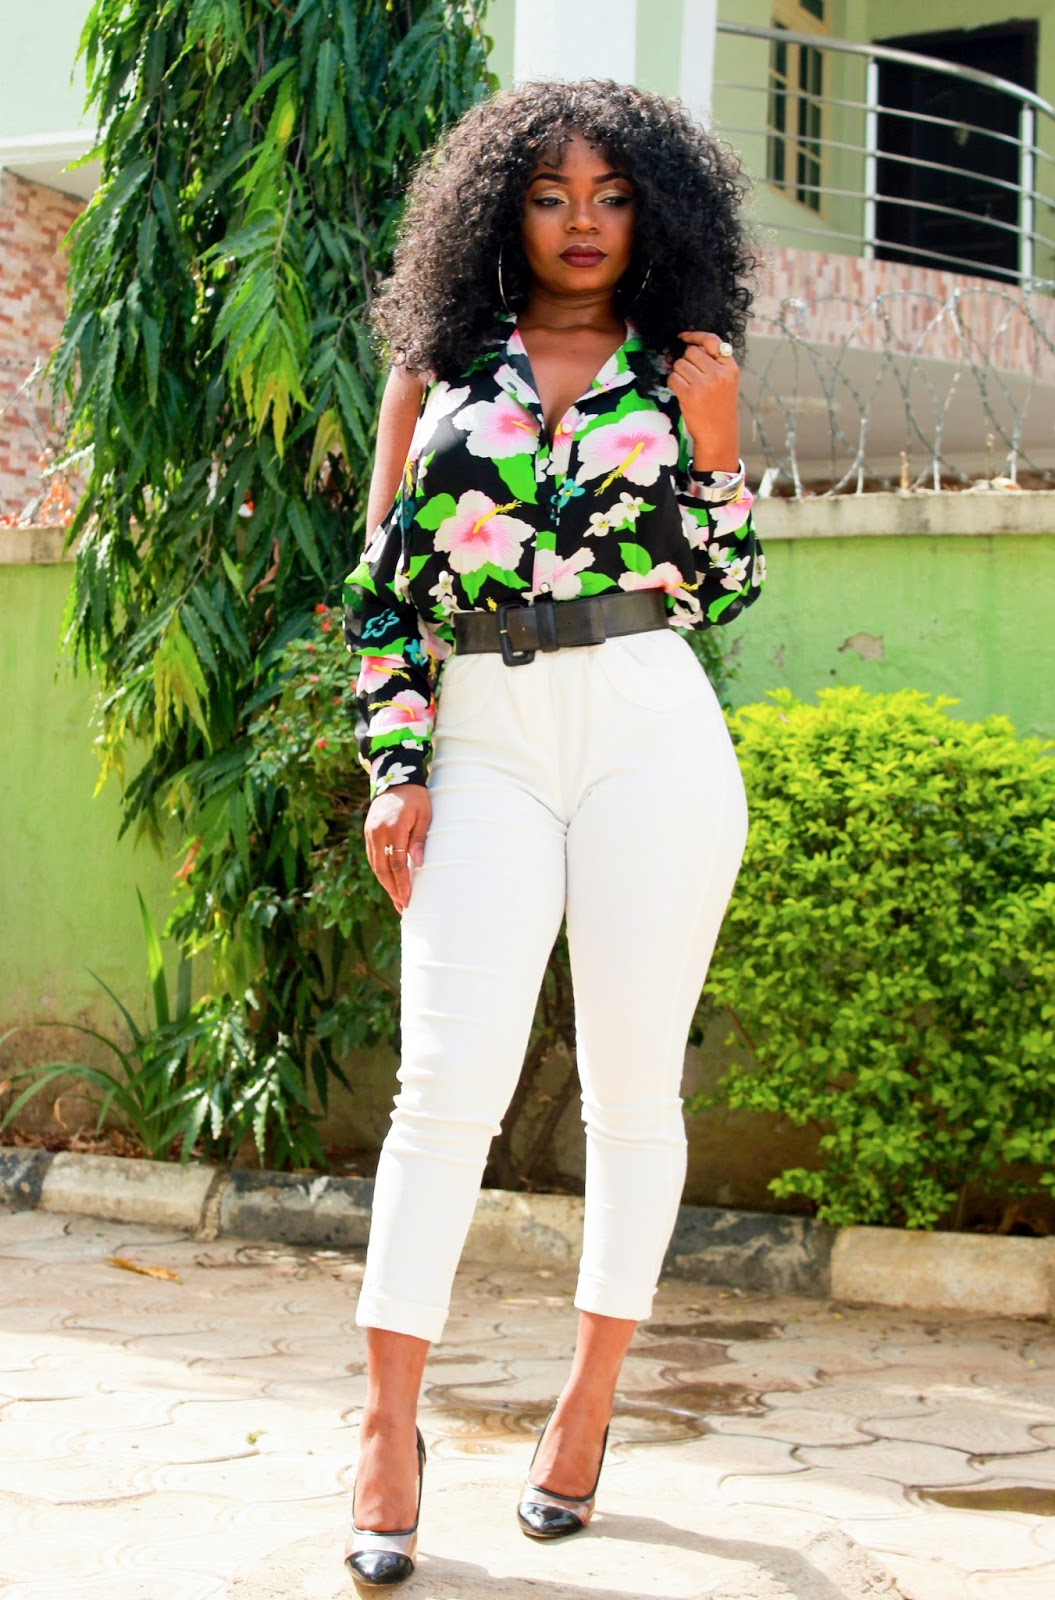 Floral print shirt with white pants and black court shoes